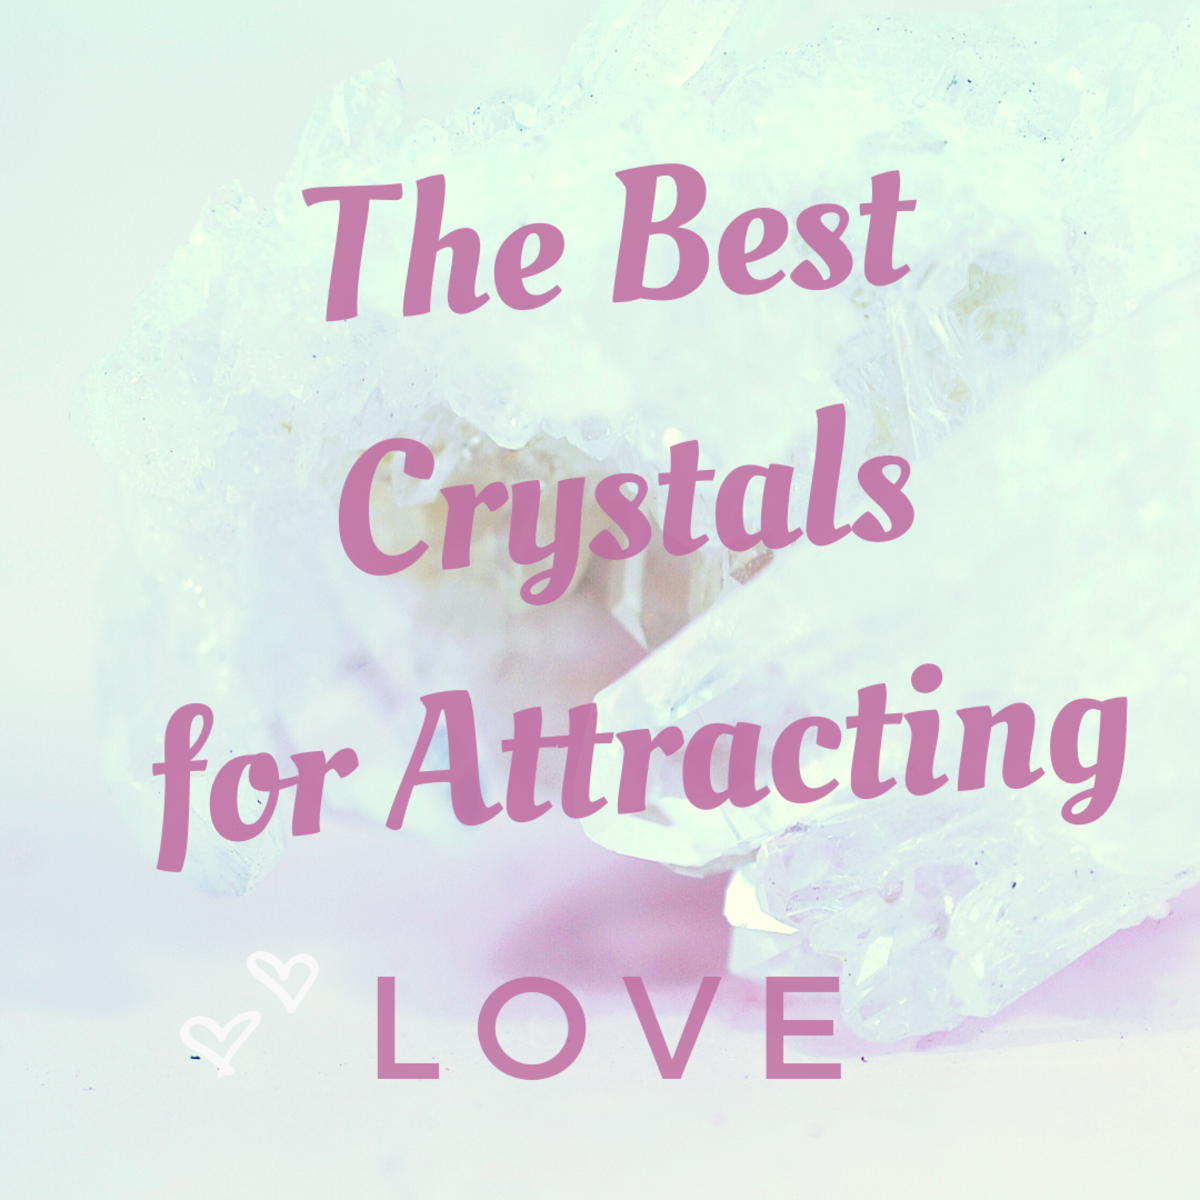 The best crystals for bringing love into your life.